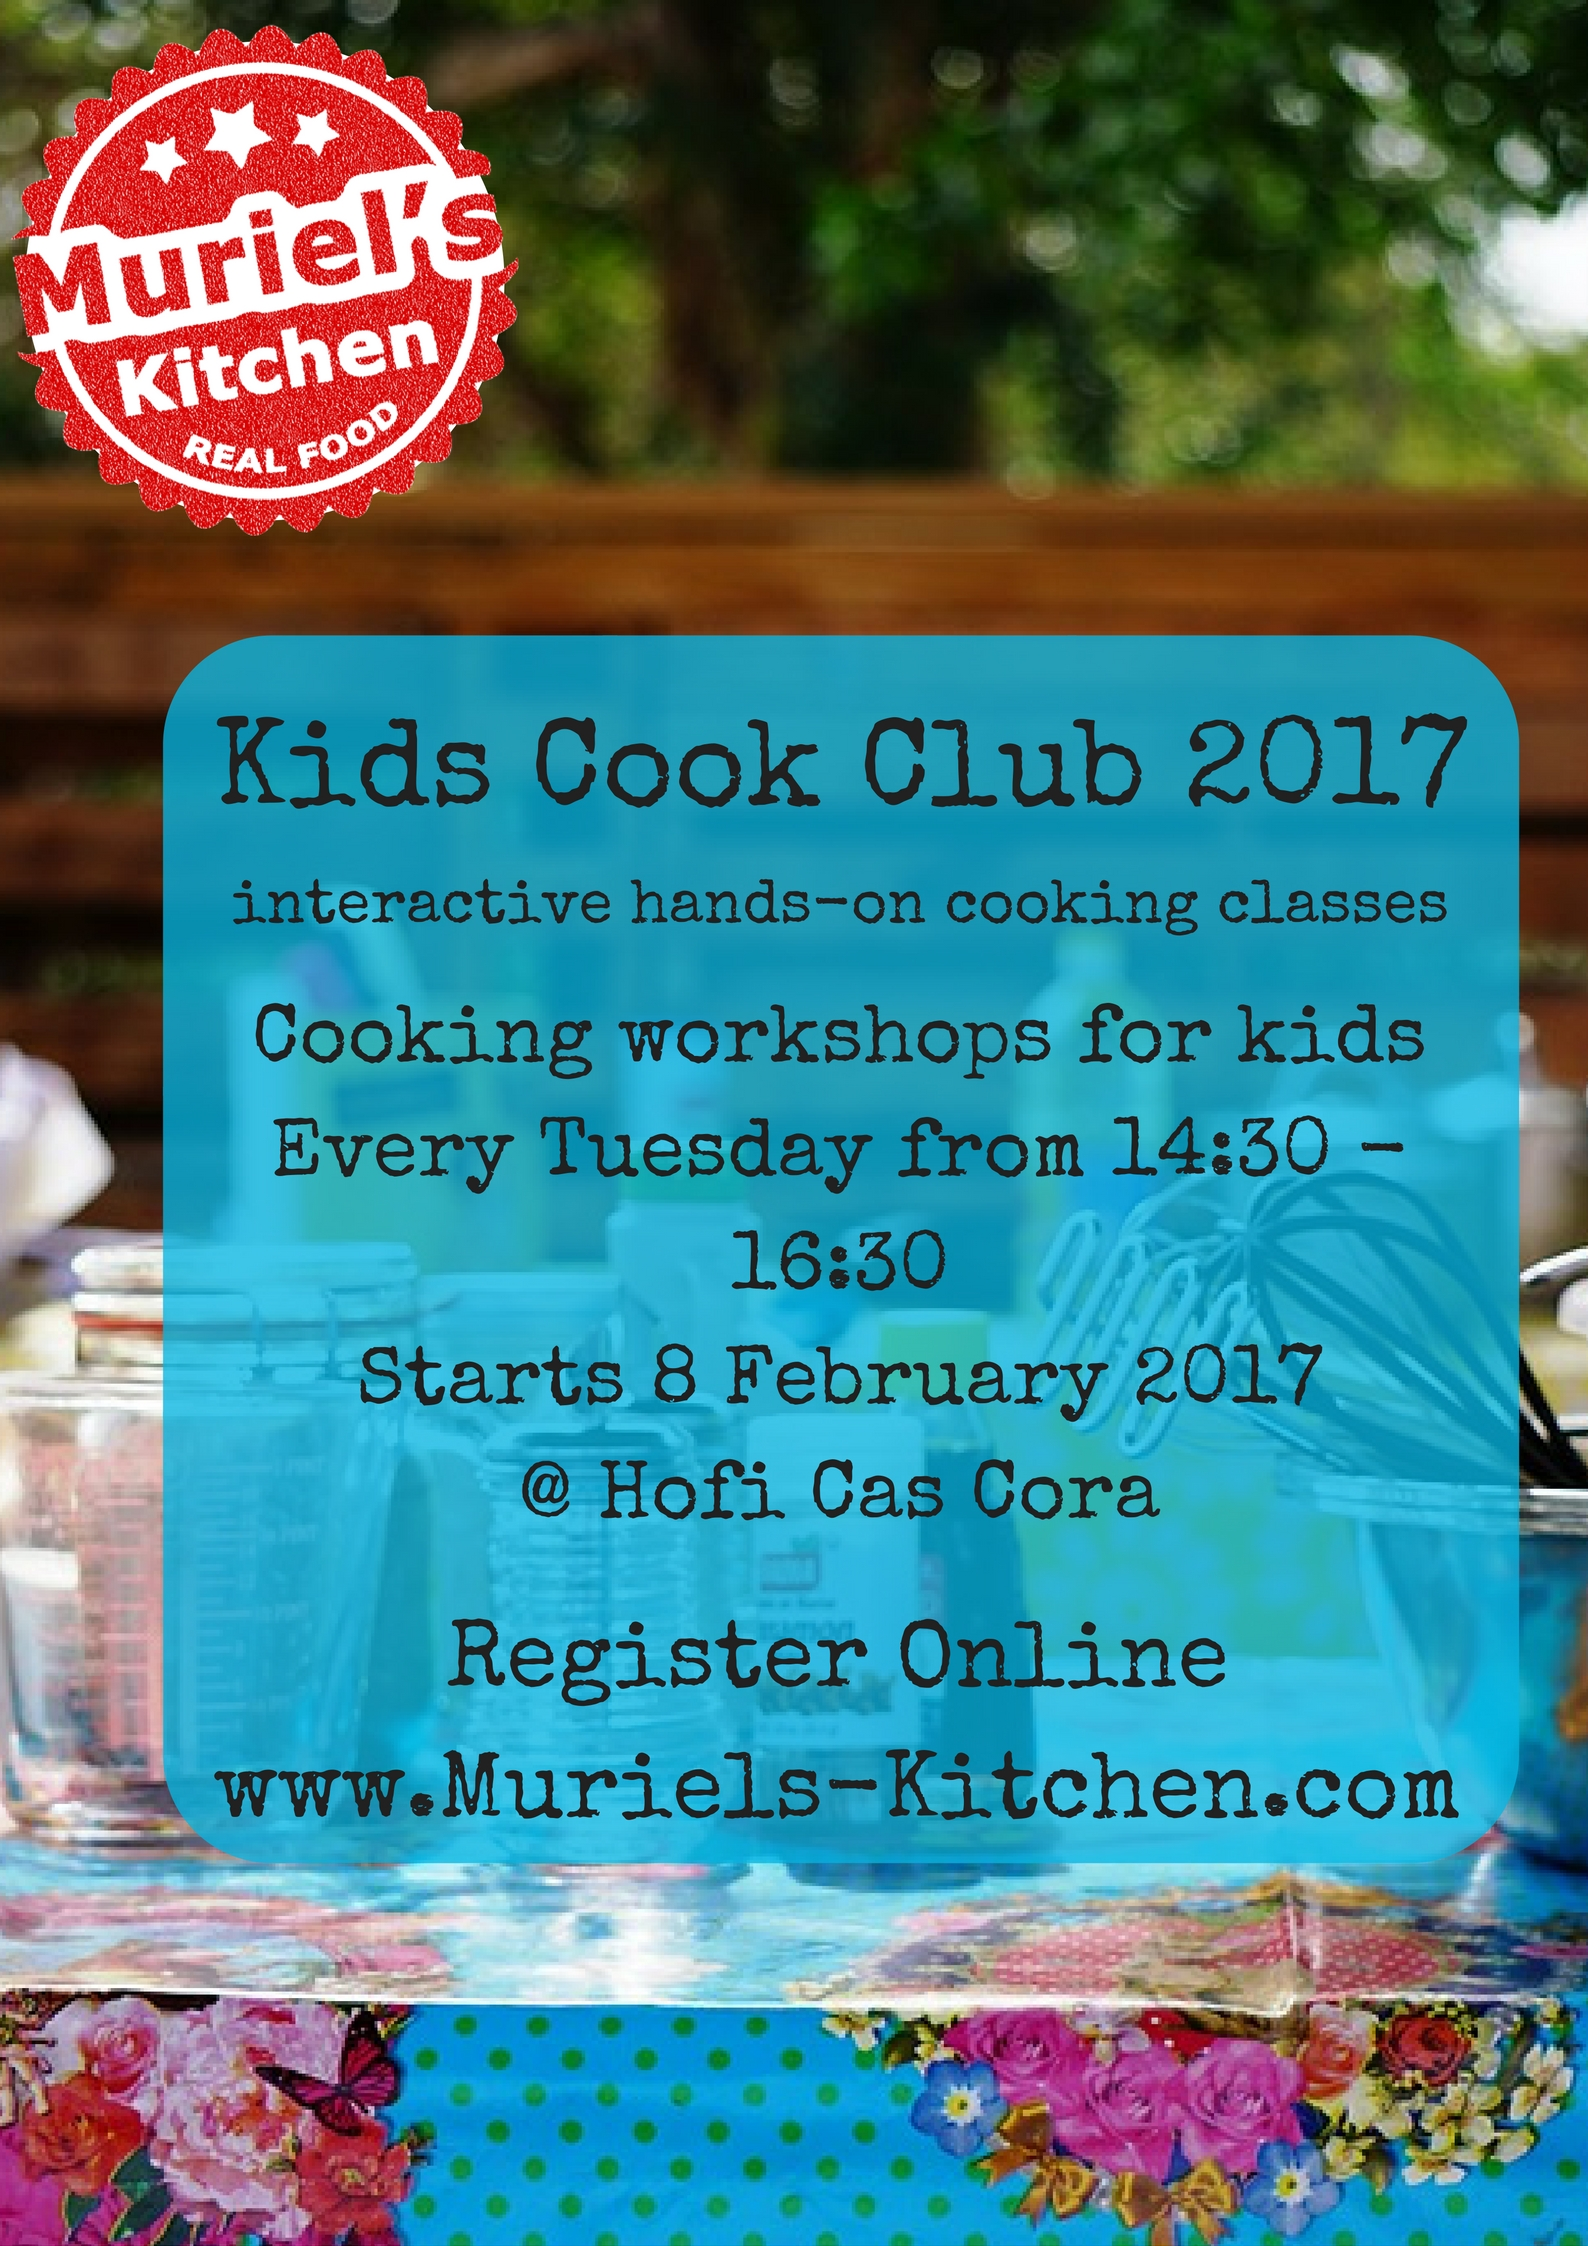 Kids Cook Club 2017